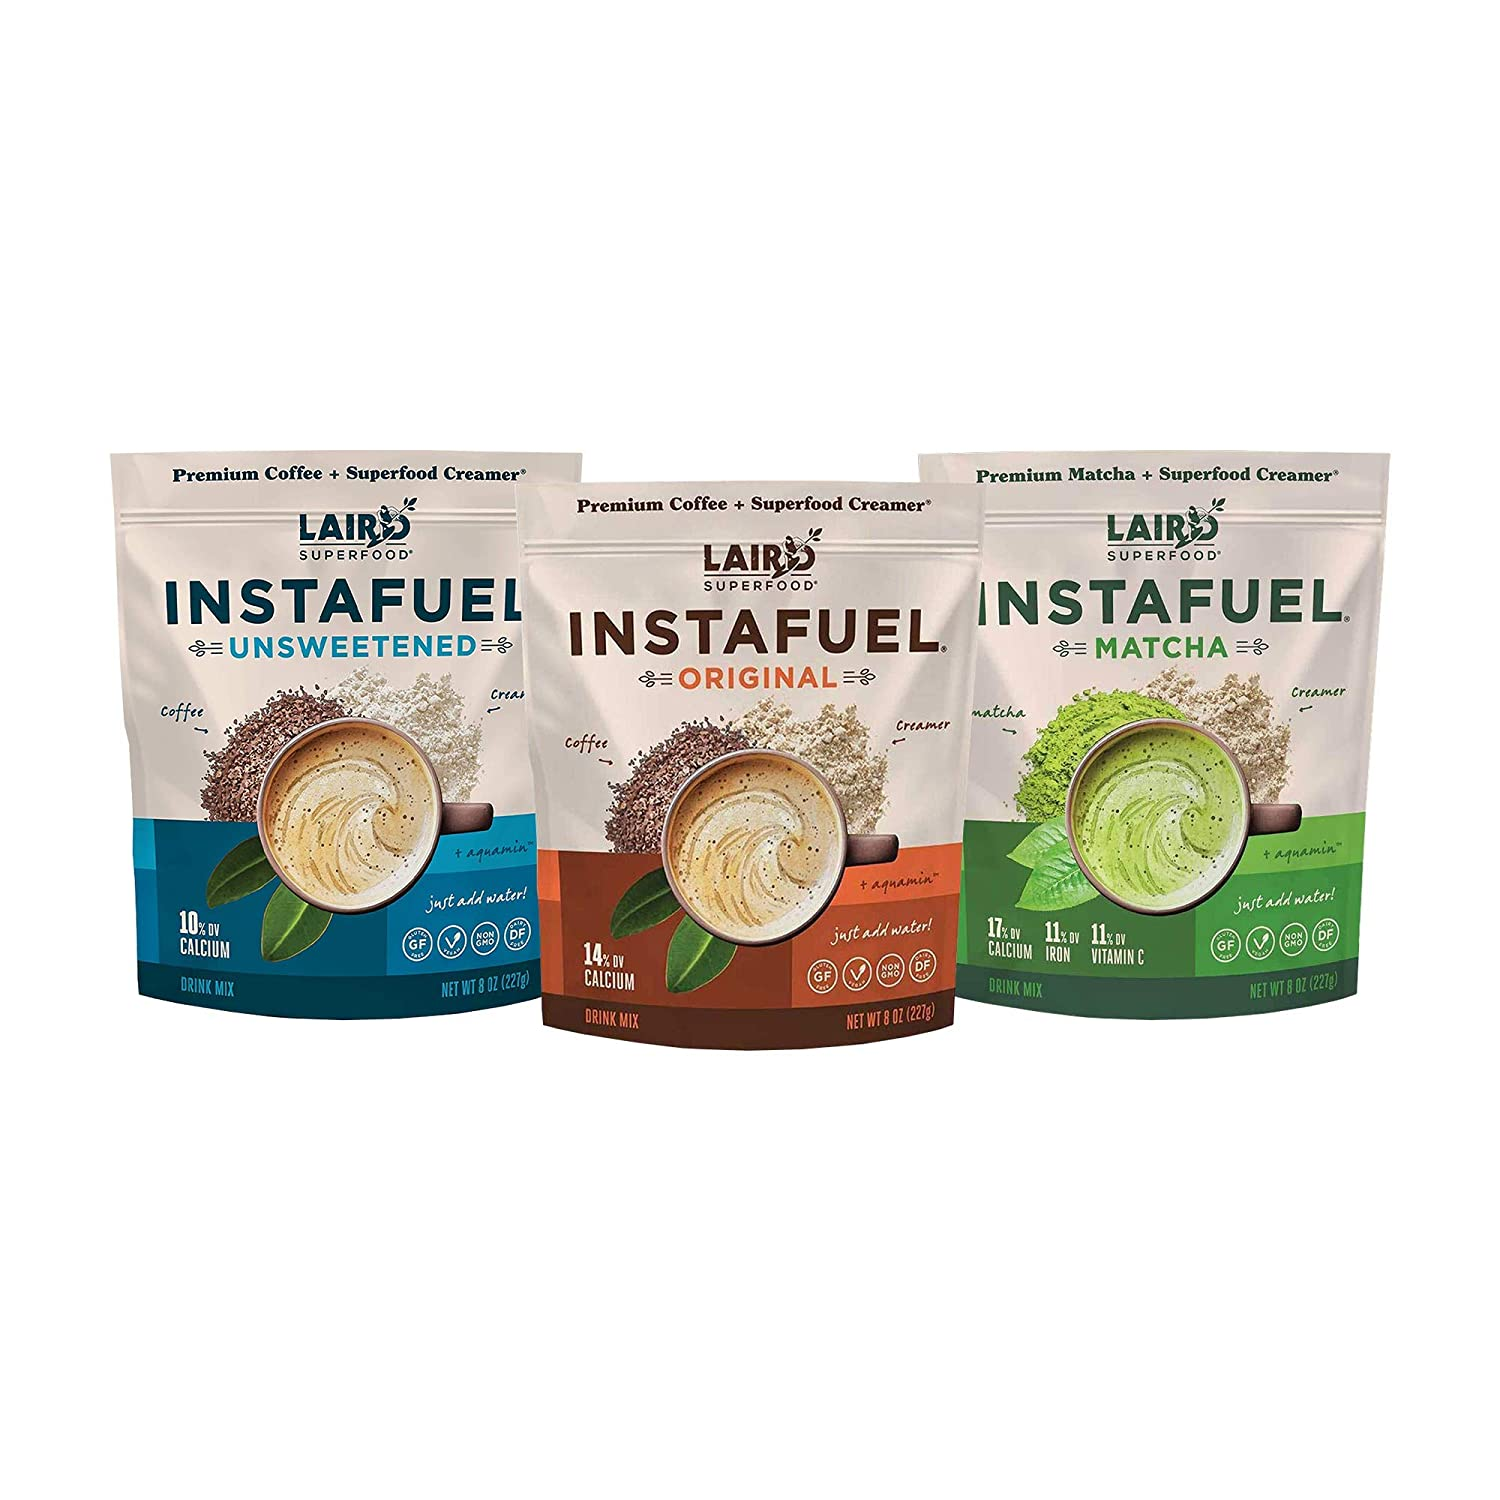 Laird Superfood Instafuel Sampler Pack - Instant Coffee Premixed with Our Superfood Non-Dairy Creamer, Flavor Bundle Includes Original, Unsweetened and Matcha (3 PK)